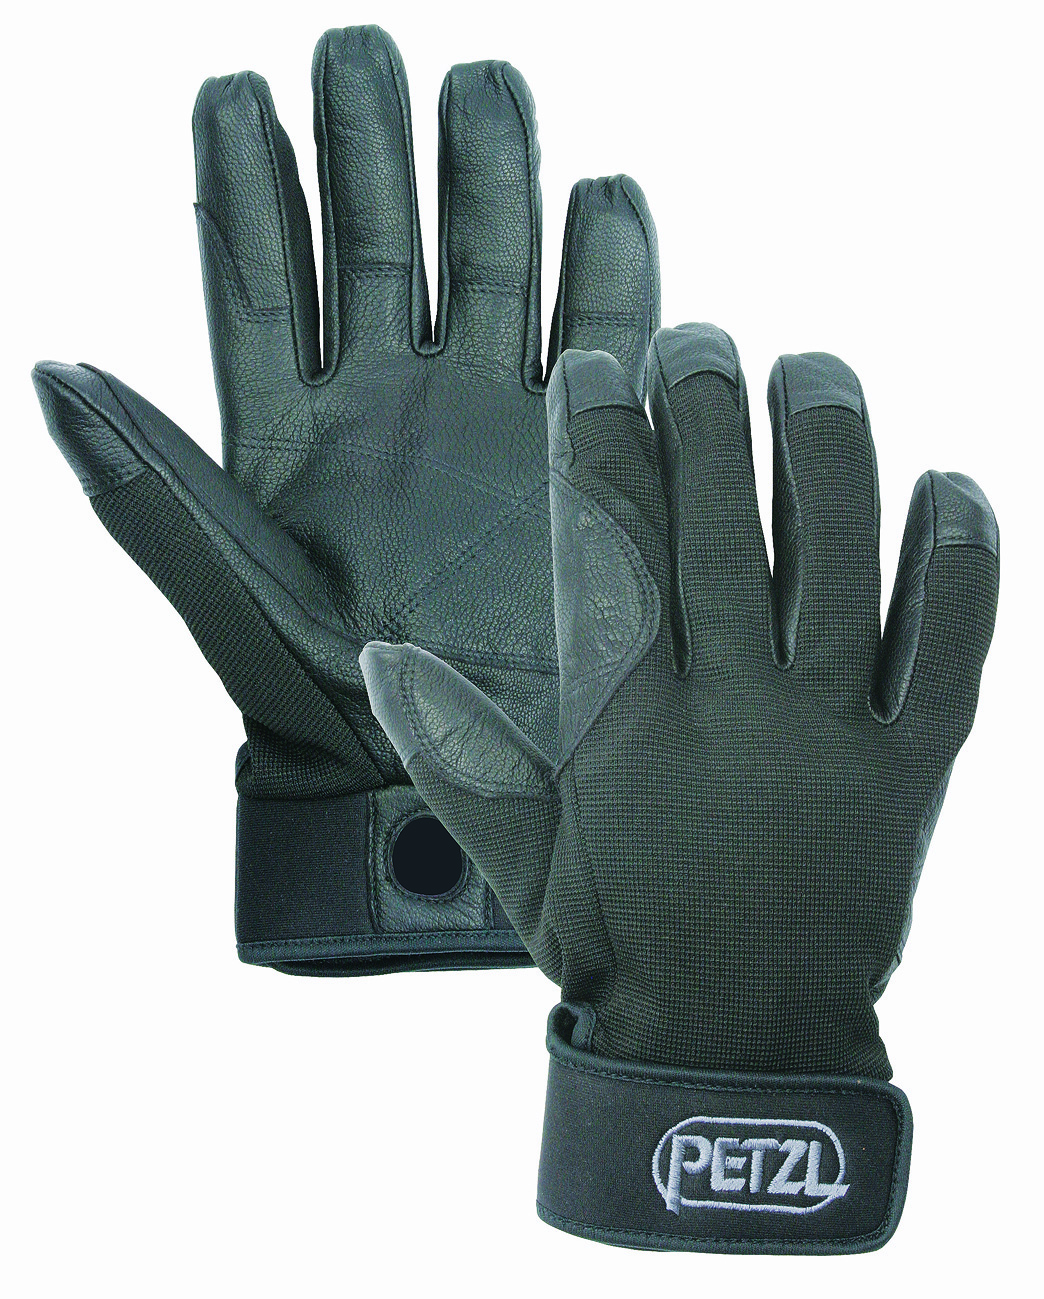 PETZL GLOVES CORDEX